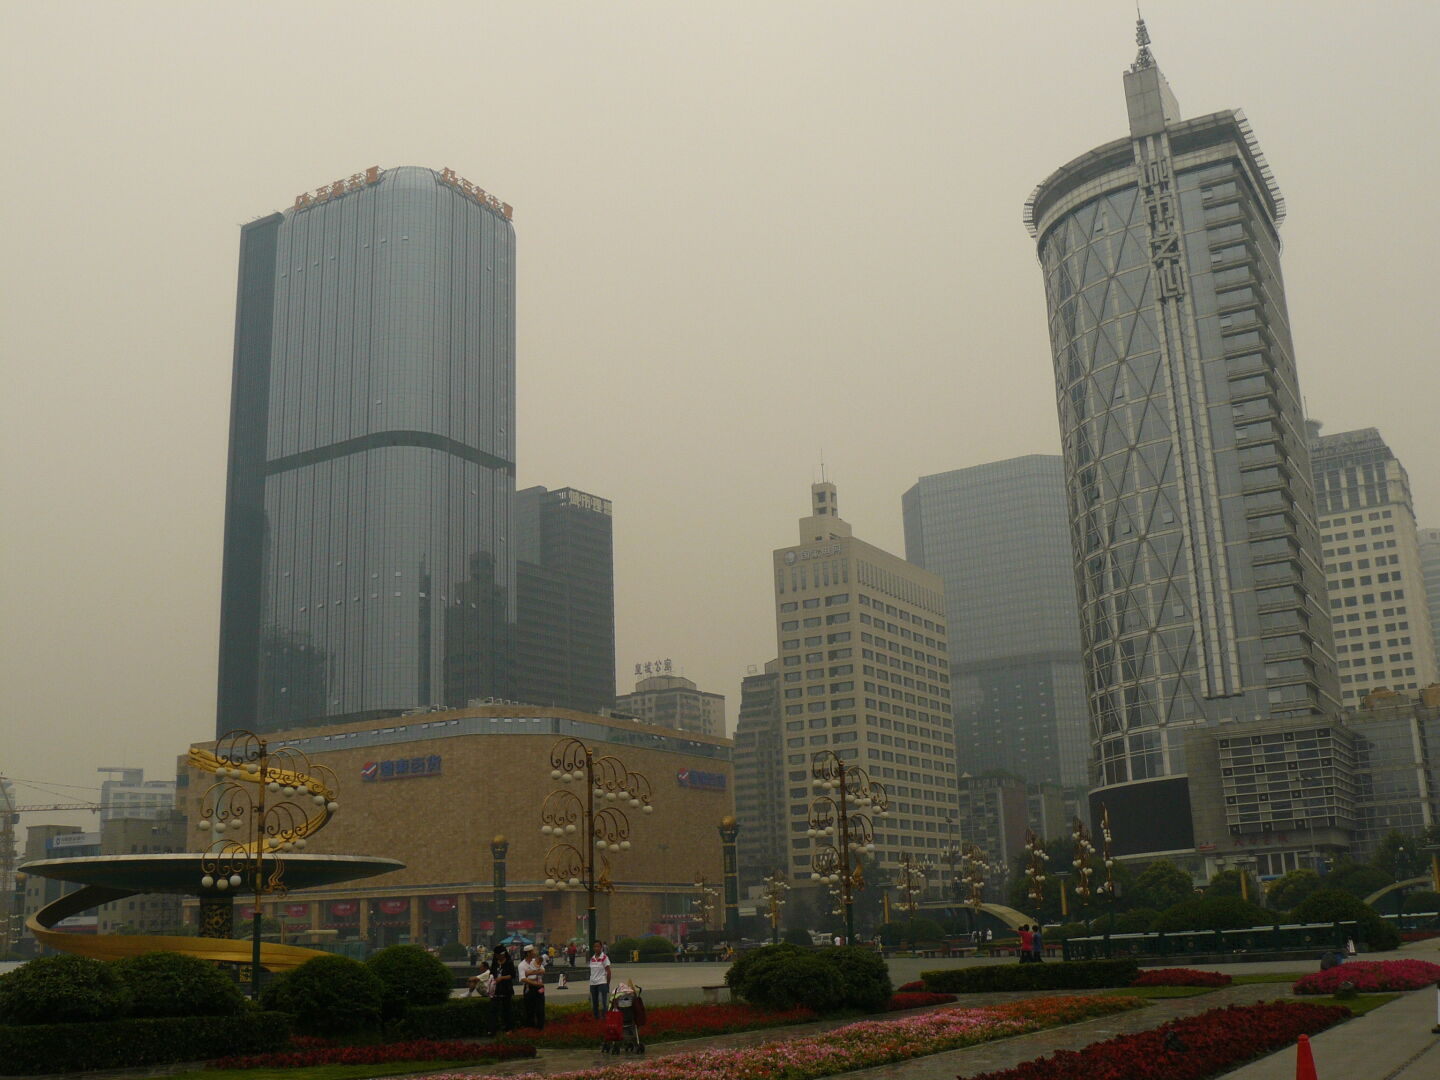 It is a pity that the haze prevented me from seeing the tops of the skyscrapers clearly.